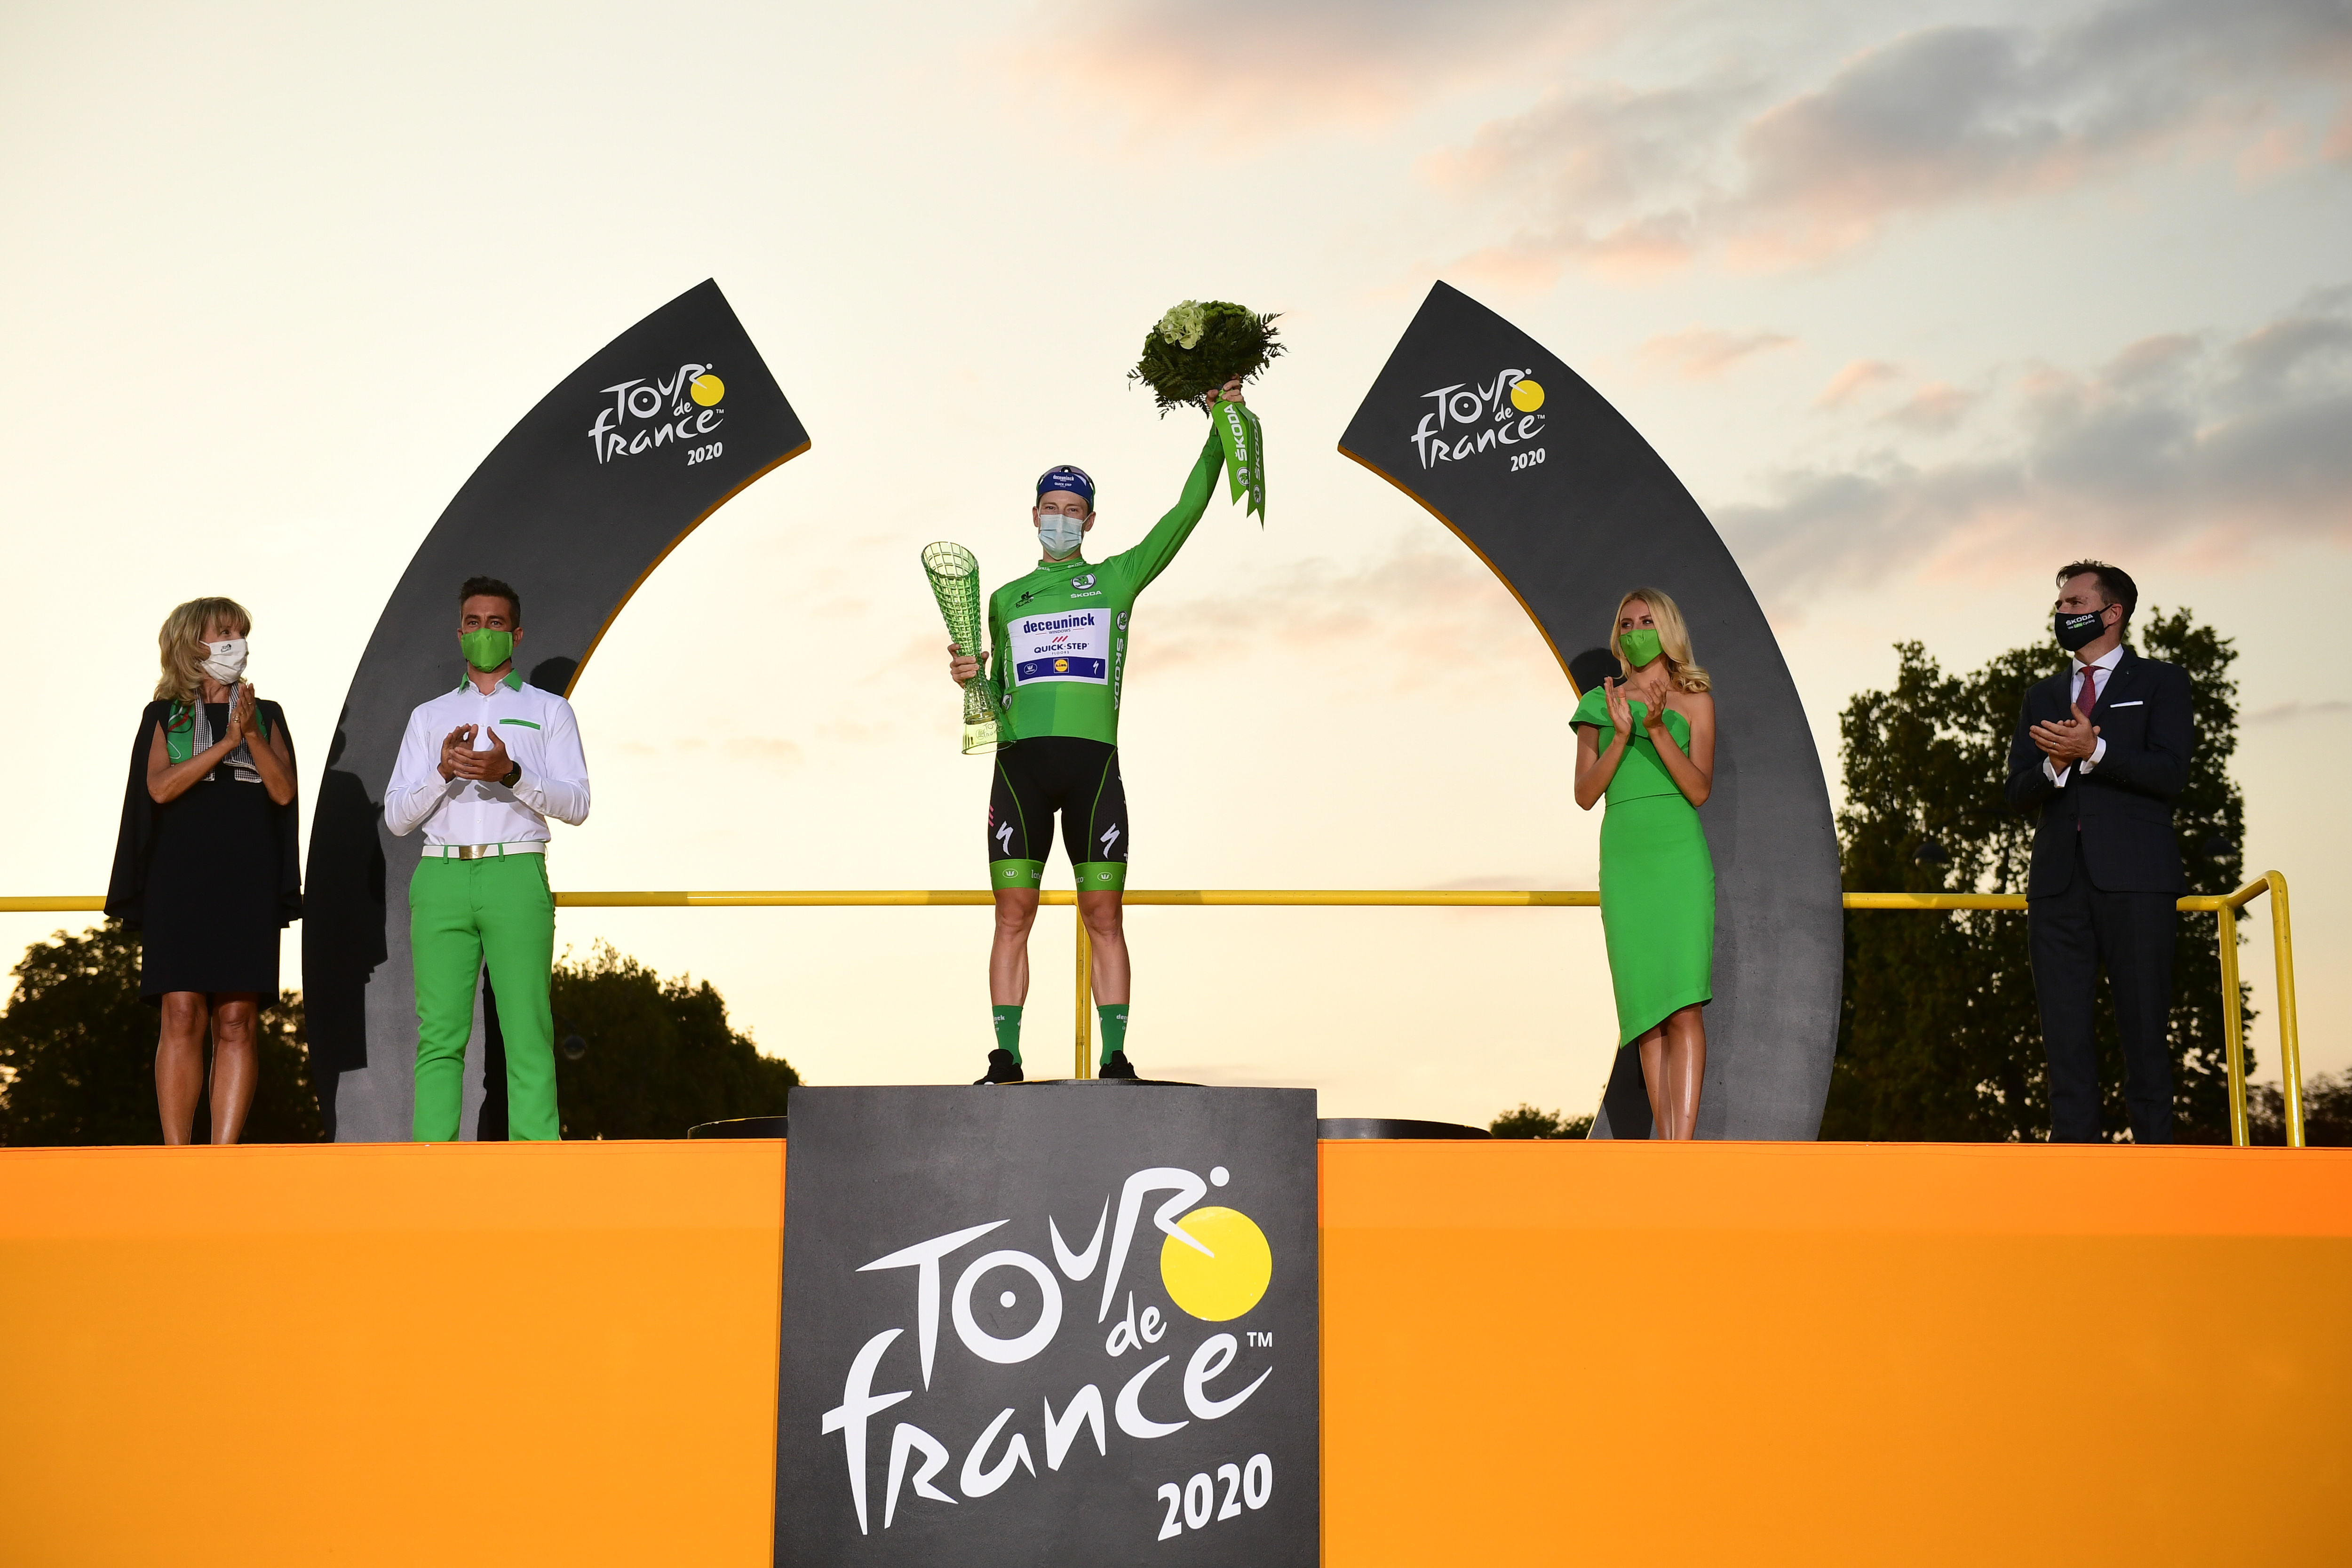 Tadej Pogacar wins the 107th Tour de France and receives crystal glass trophy from SKODA Design - Image 2